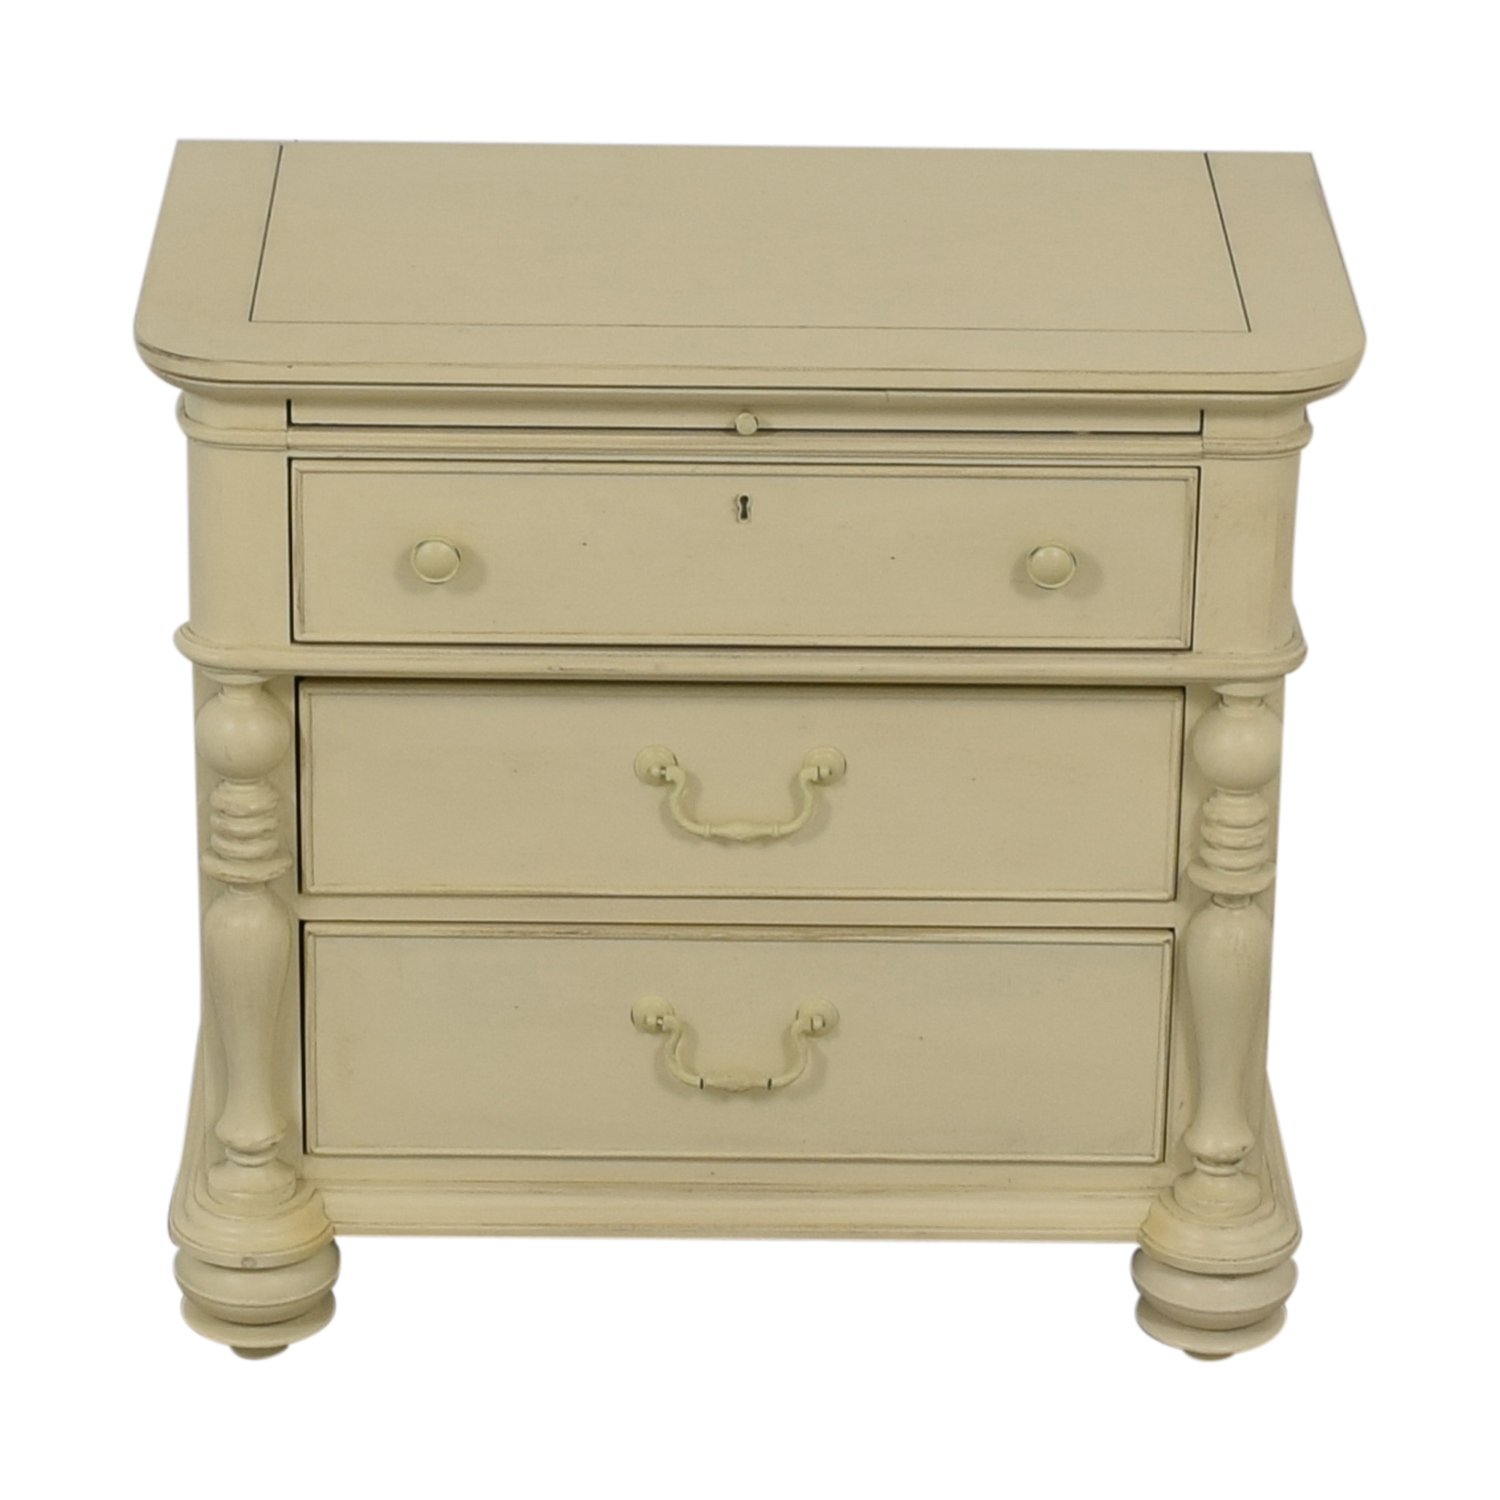 Paula Deen Home Paula Deen Home White Three-Drawer Side Table with Tray coupon